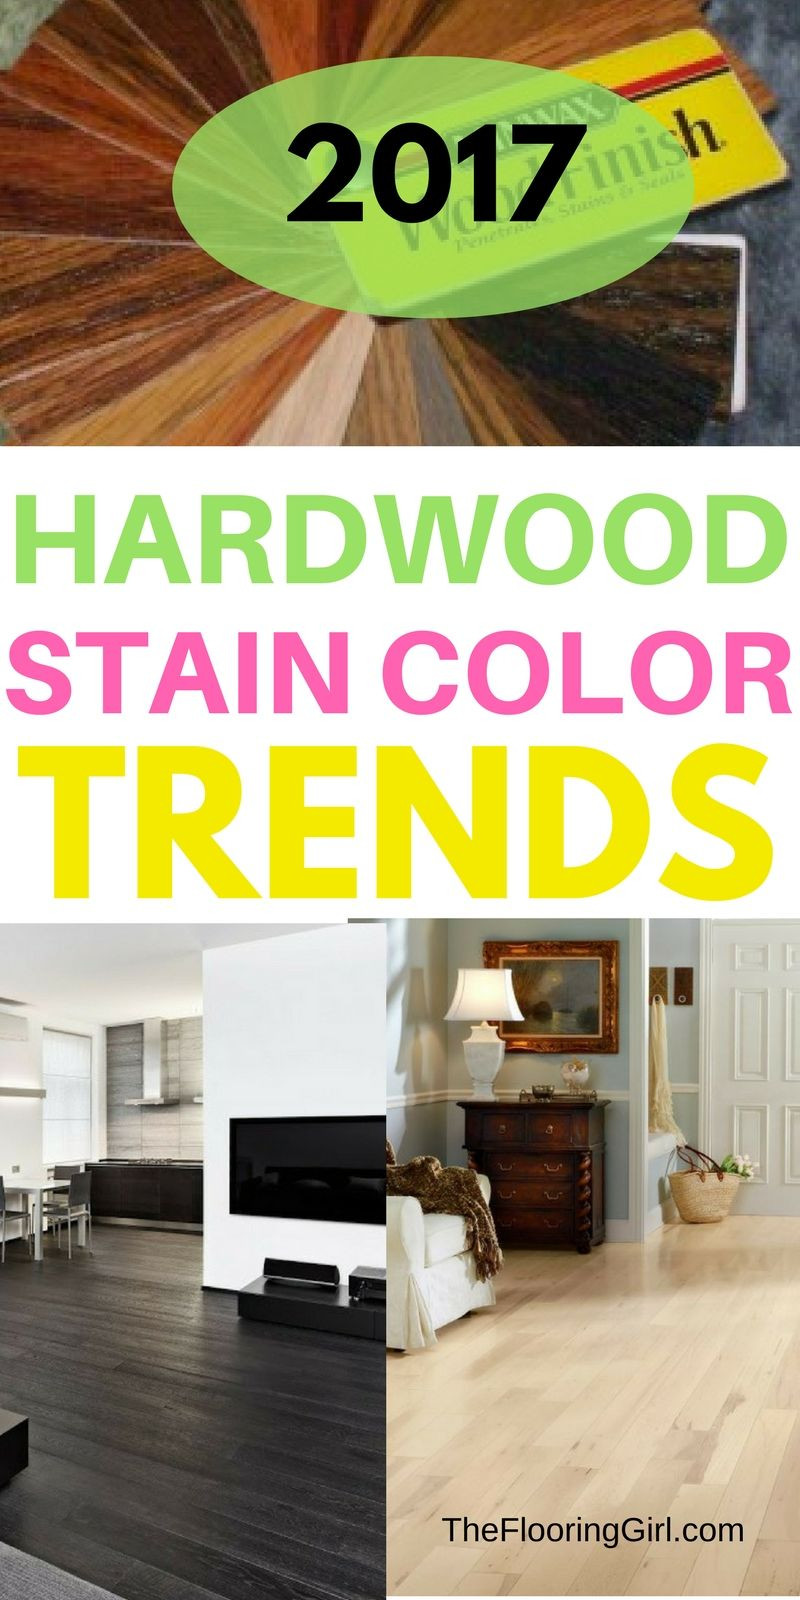 what is average cost to refinish hardwood floors of hardwood flooring stain color trends 2018 more from the flooring in hardwood flooring stain color trends for 2017 hardwood colors that are in style theflooringgirl com